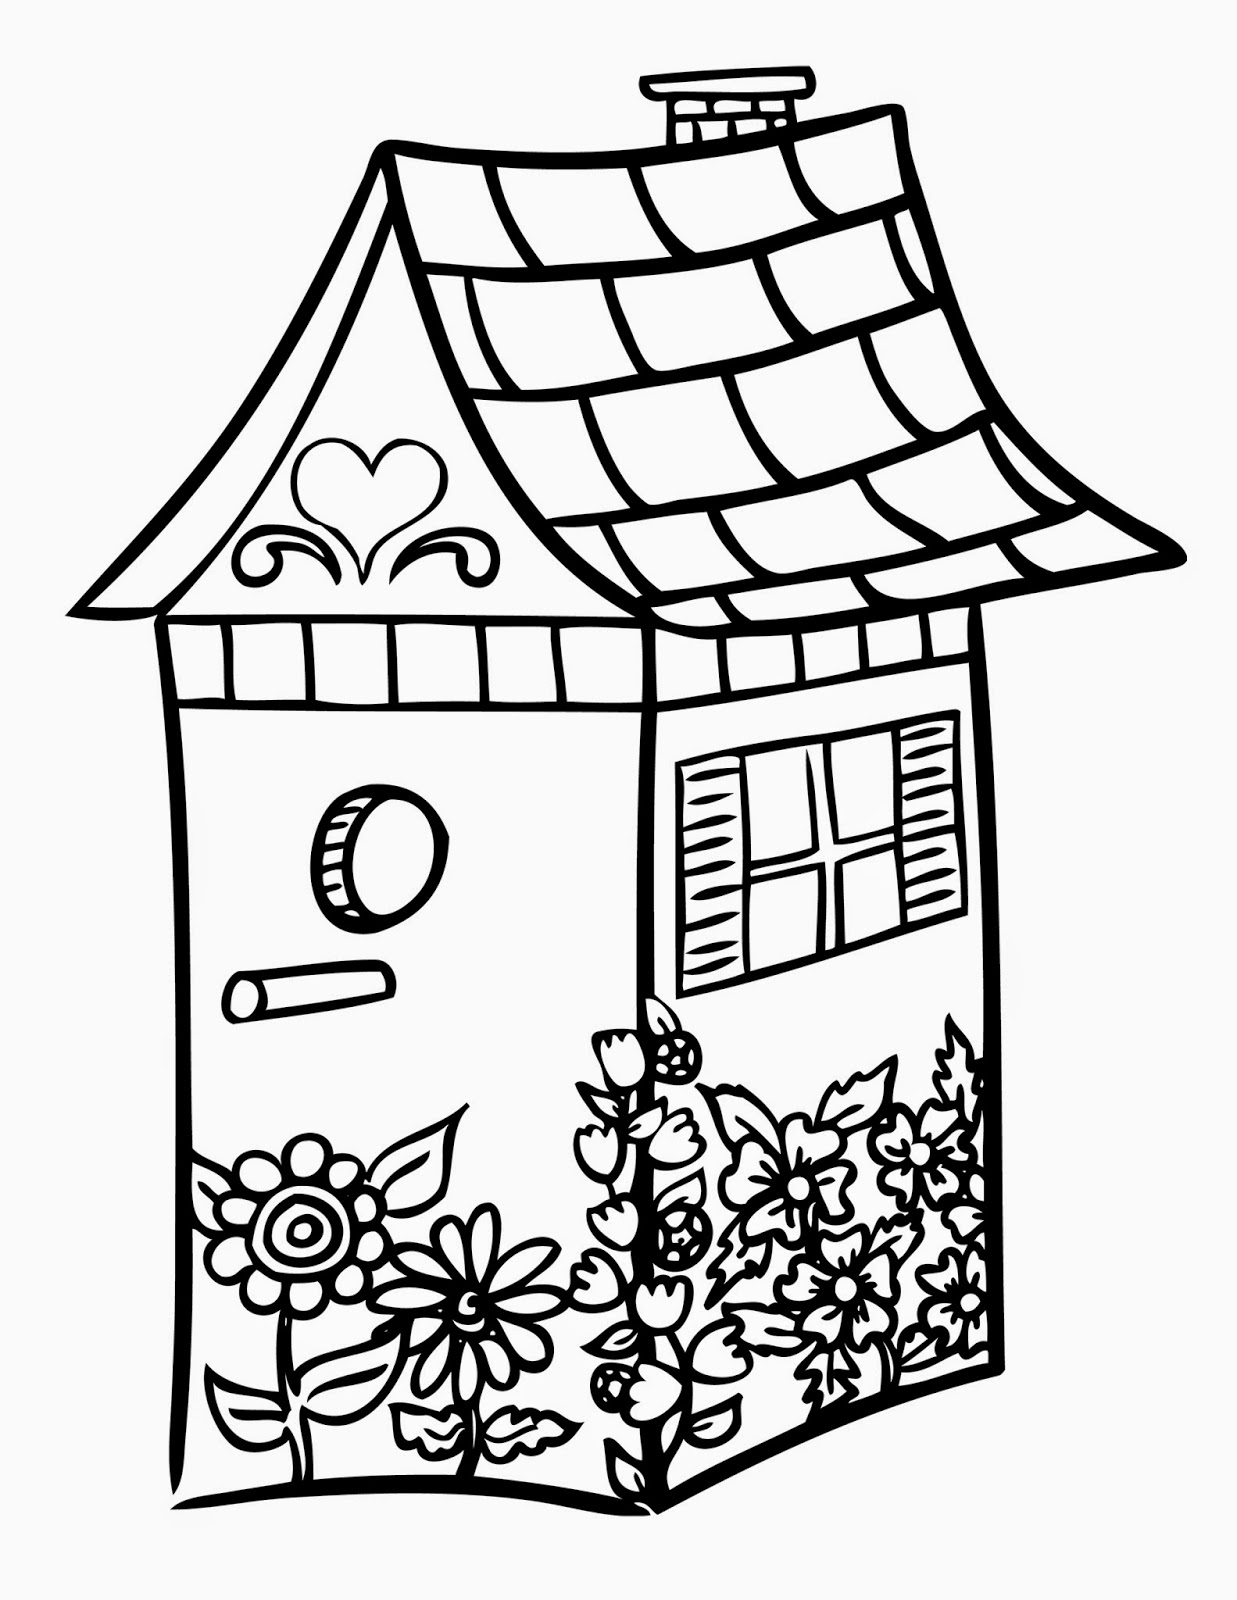 Daisies Digis And Doodads Free Digi Stamps